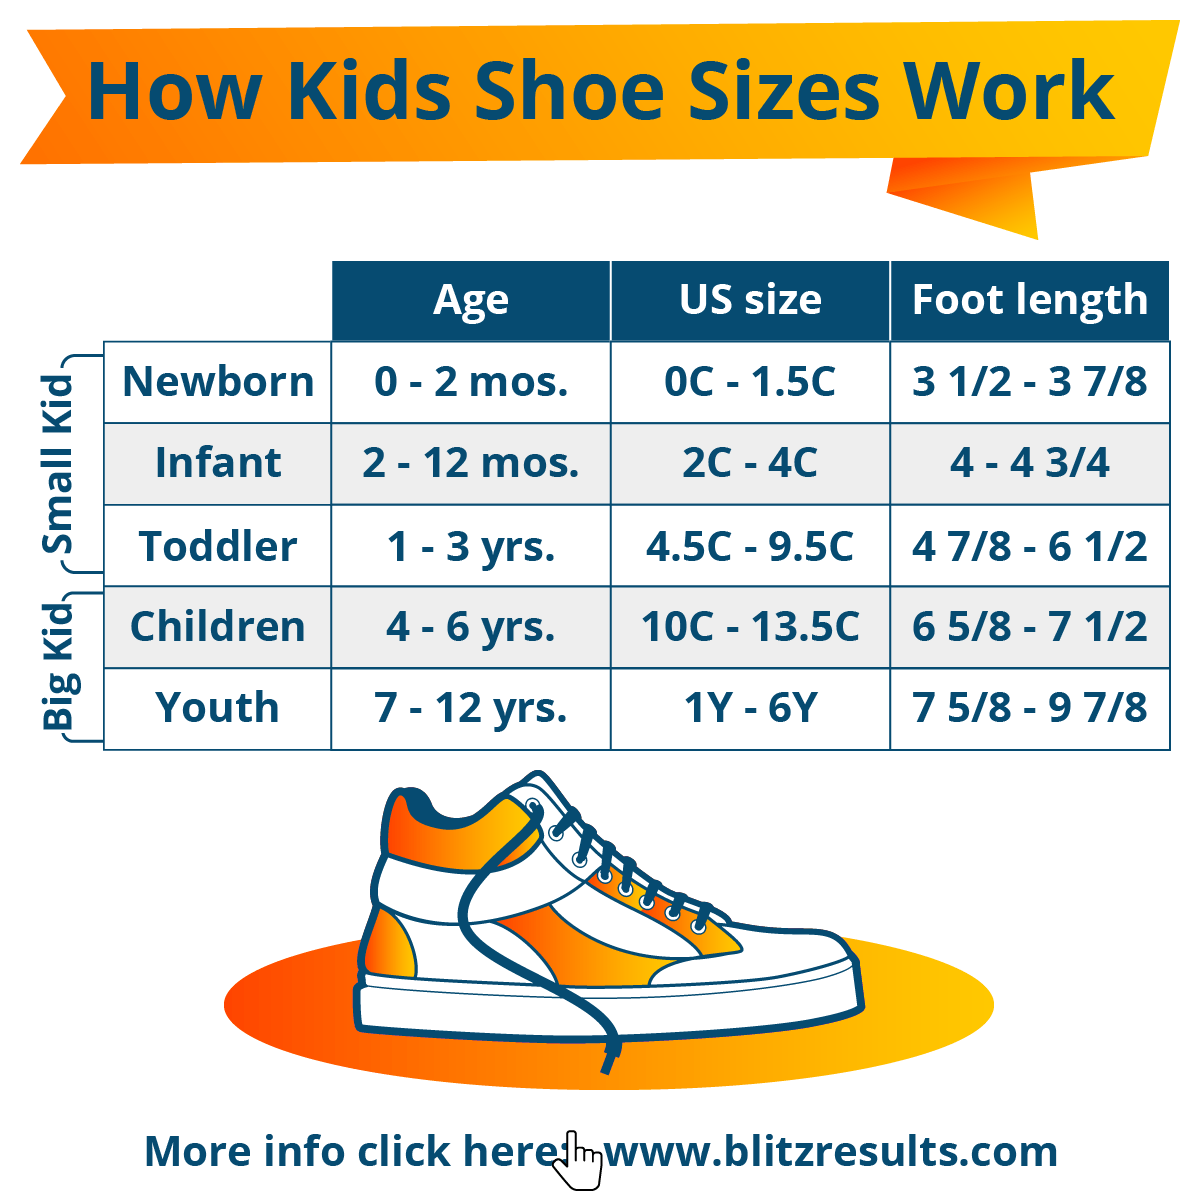 How do Girls Shoe Sizes work?